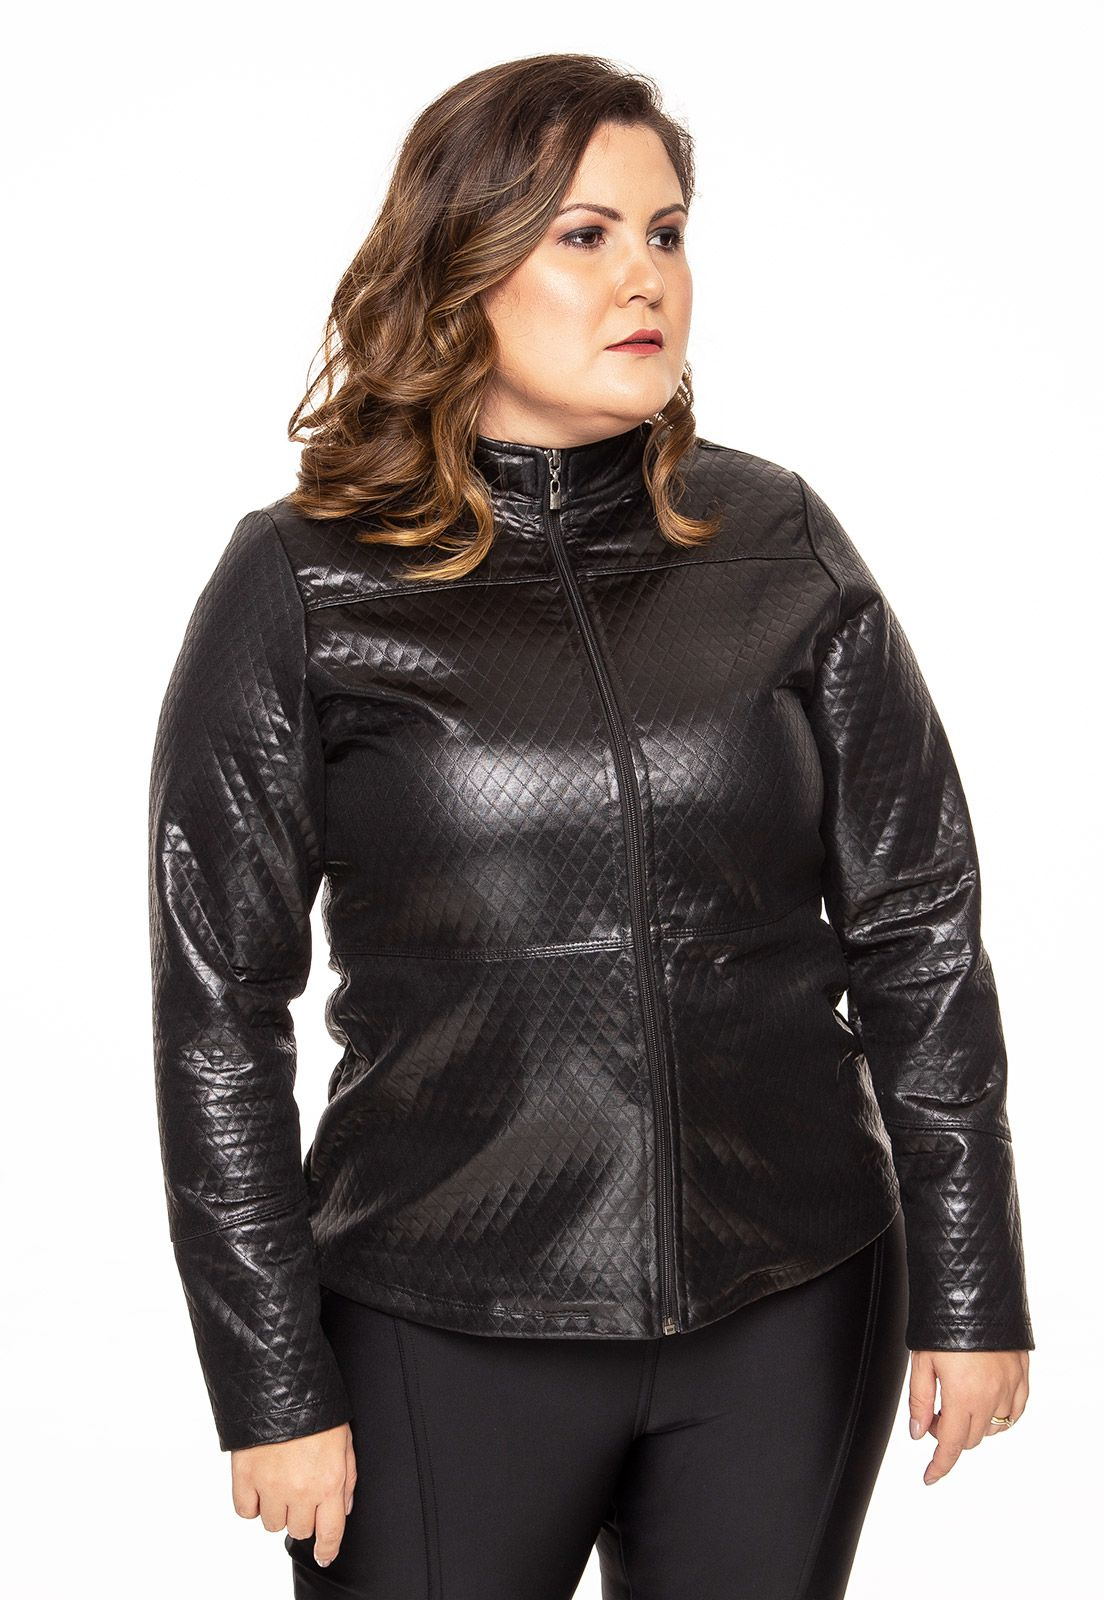 Jaqueta plus size sublime preto